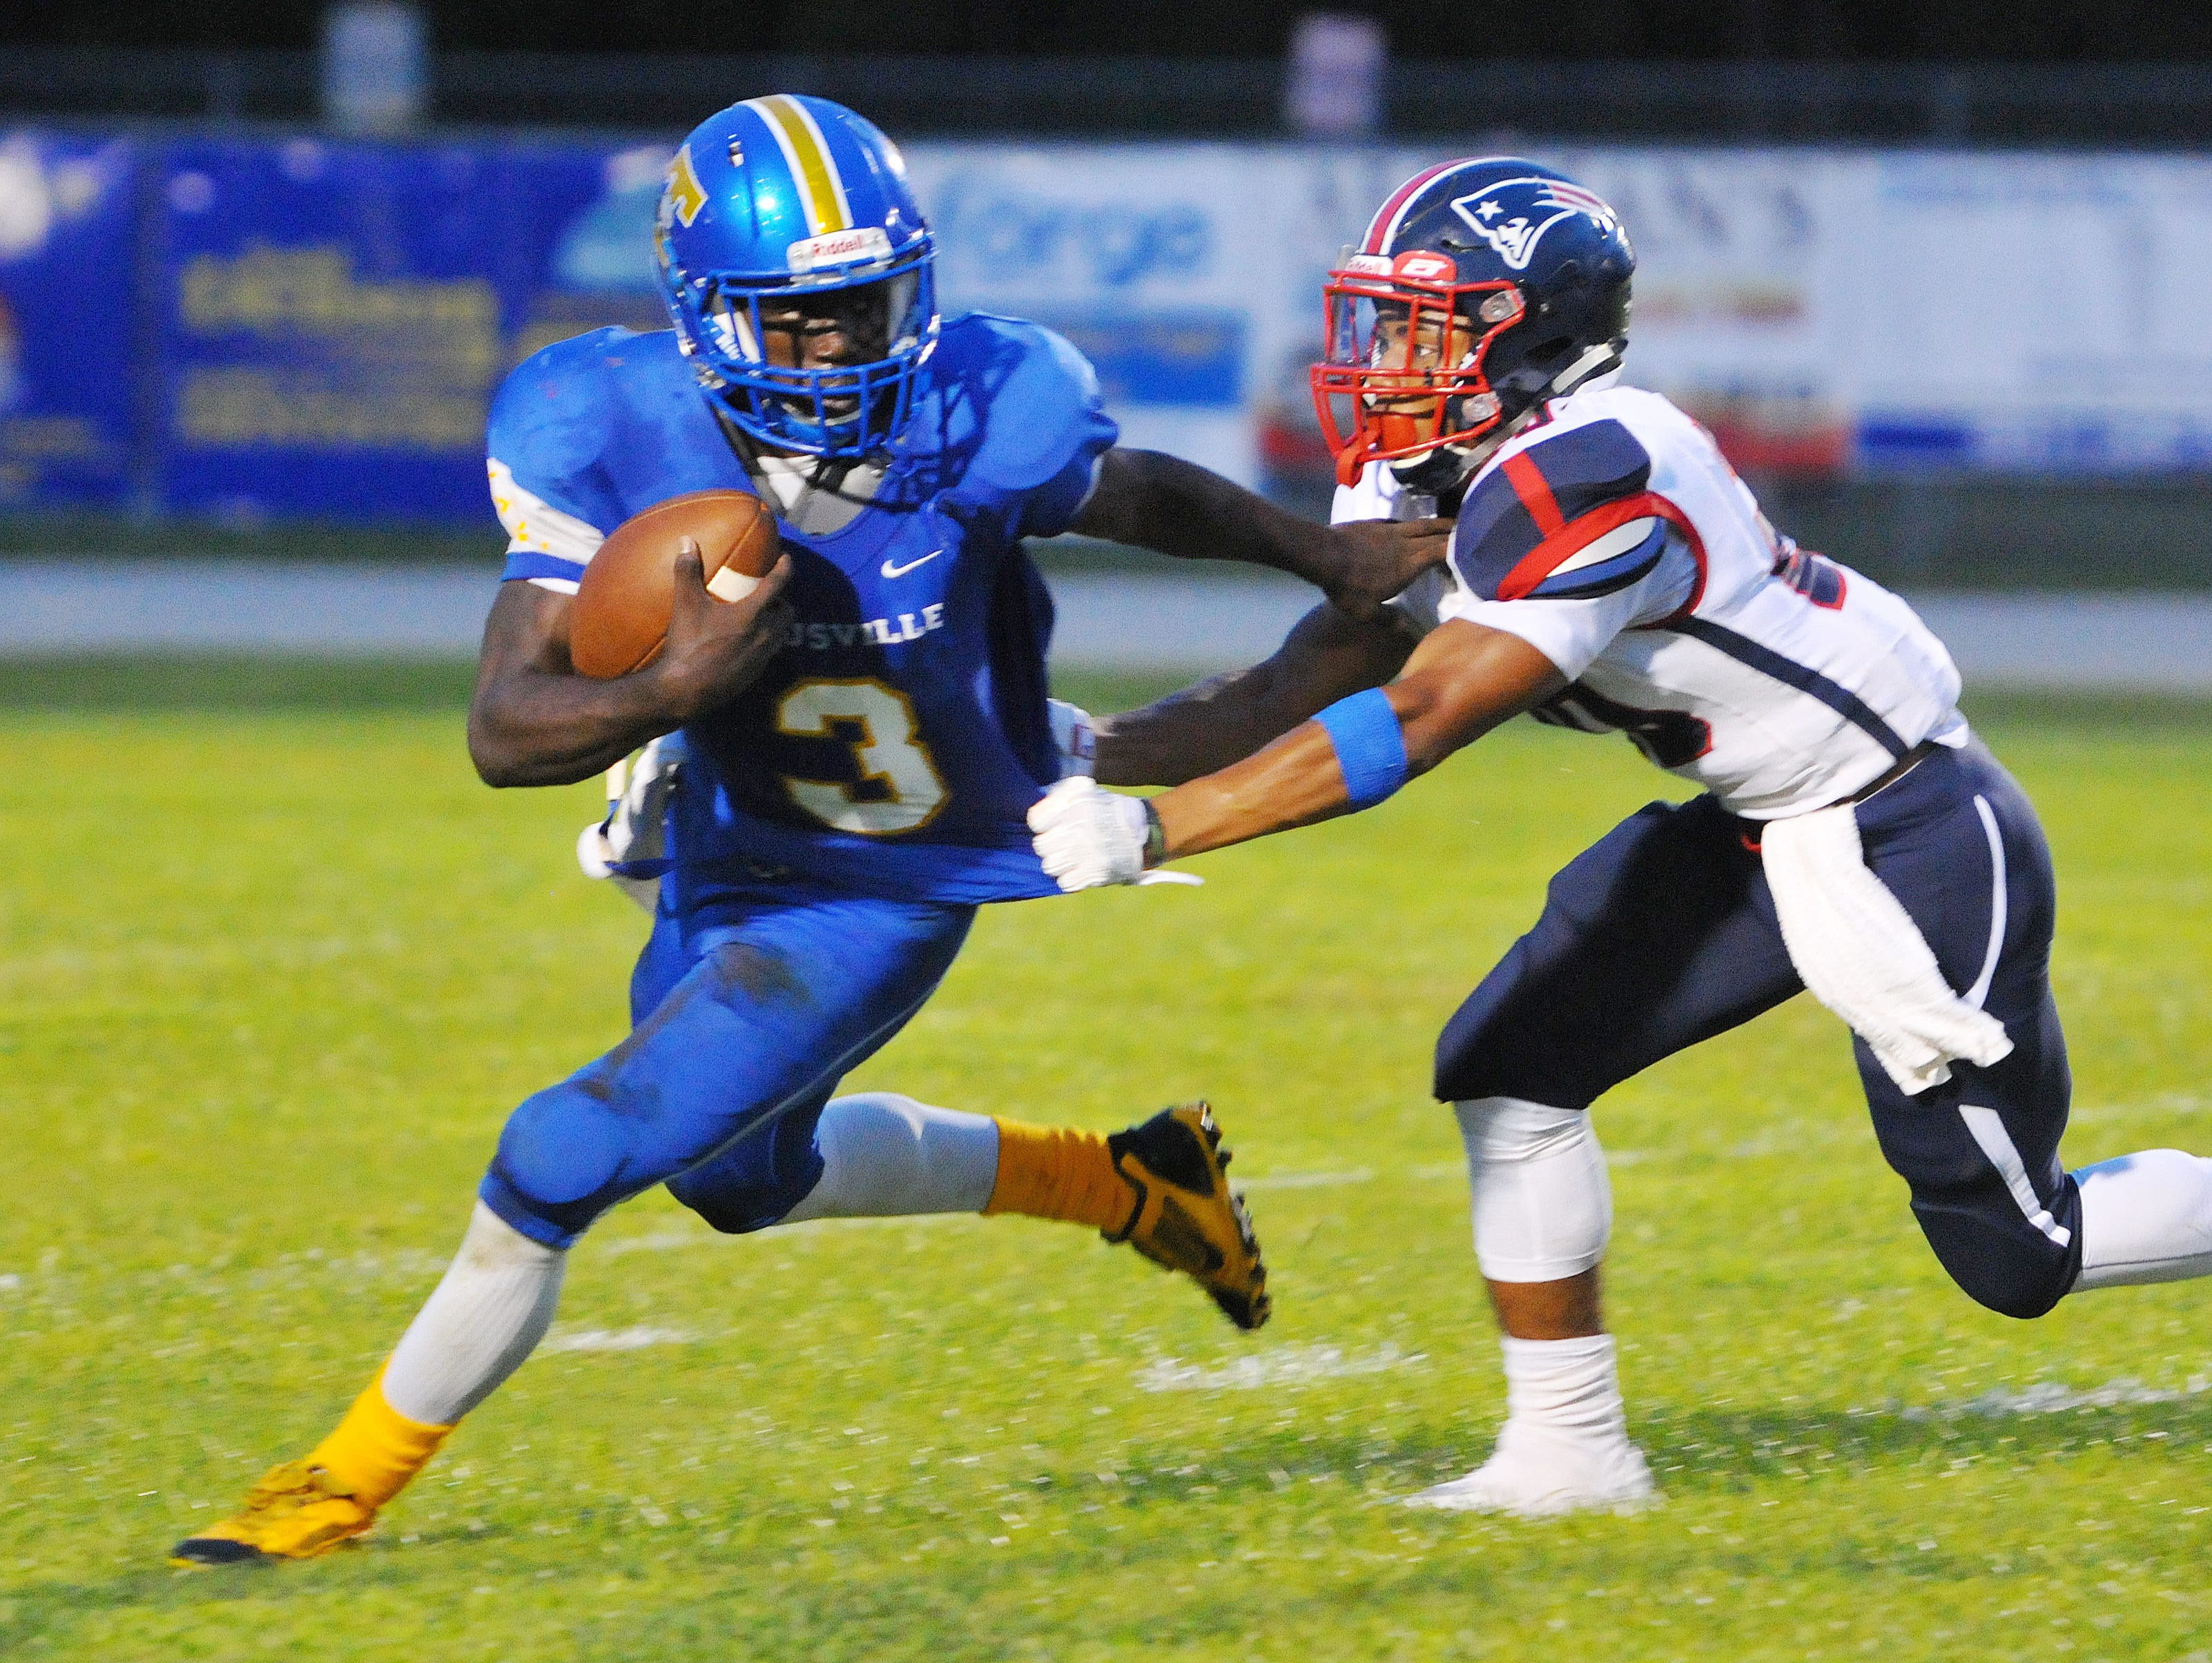 Titusville High's #3 Dontavious Marcus tries to escape the grasp of Lake Brantley High's #20 Paris Hennington during Friday nights game held at the Titusville High Stadium .